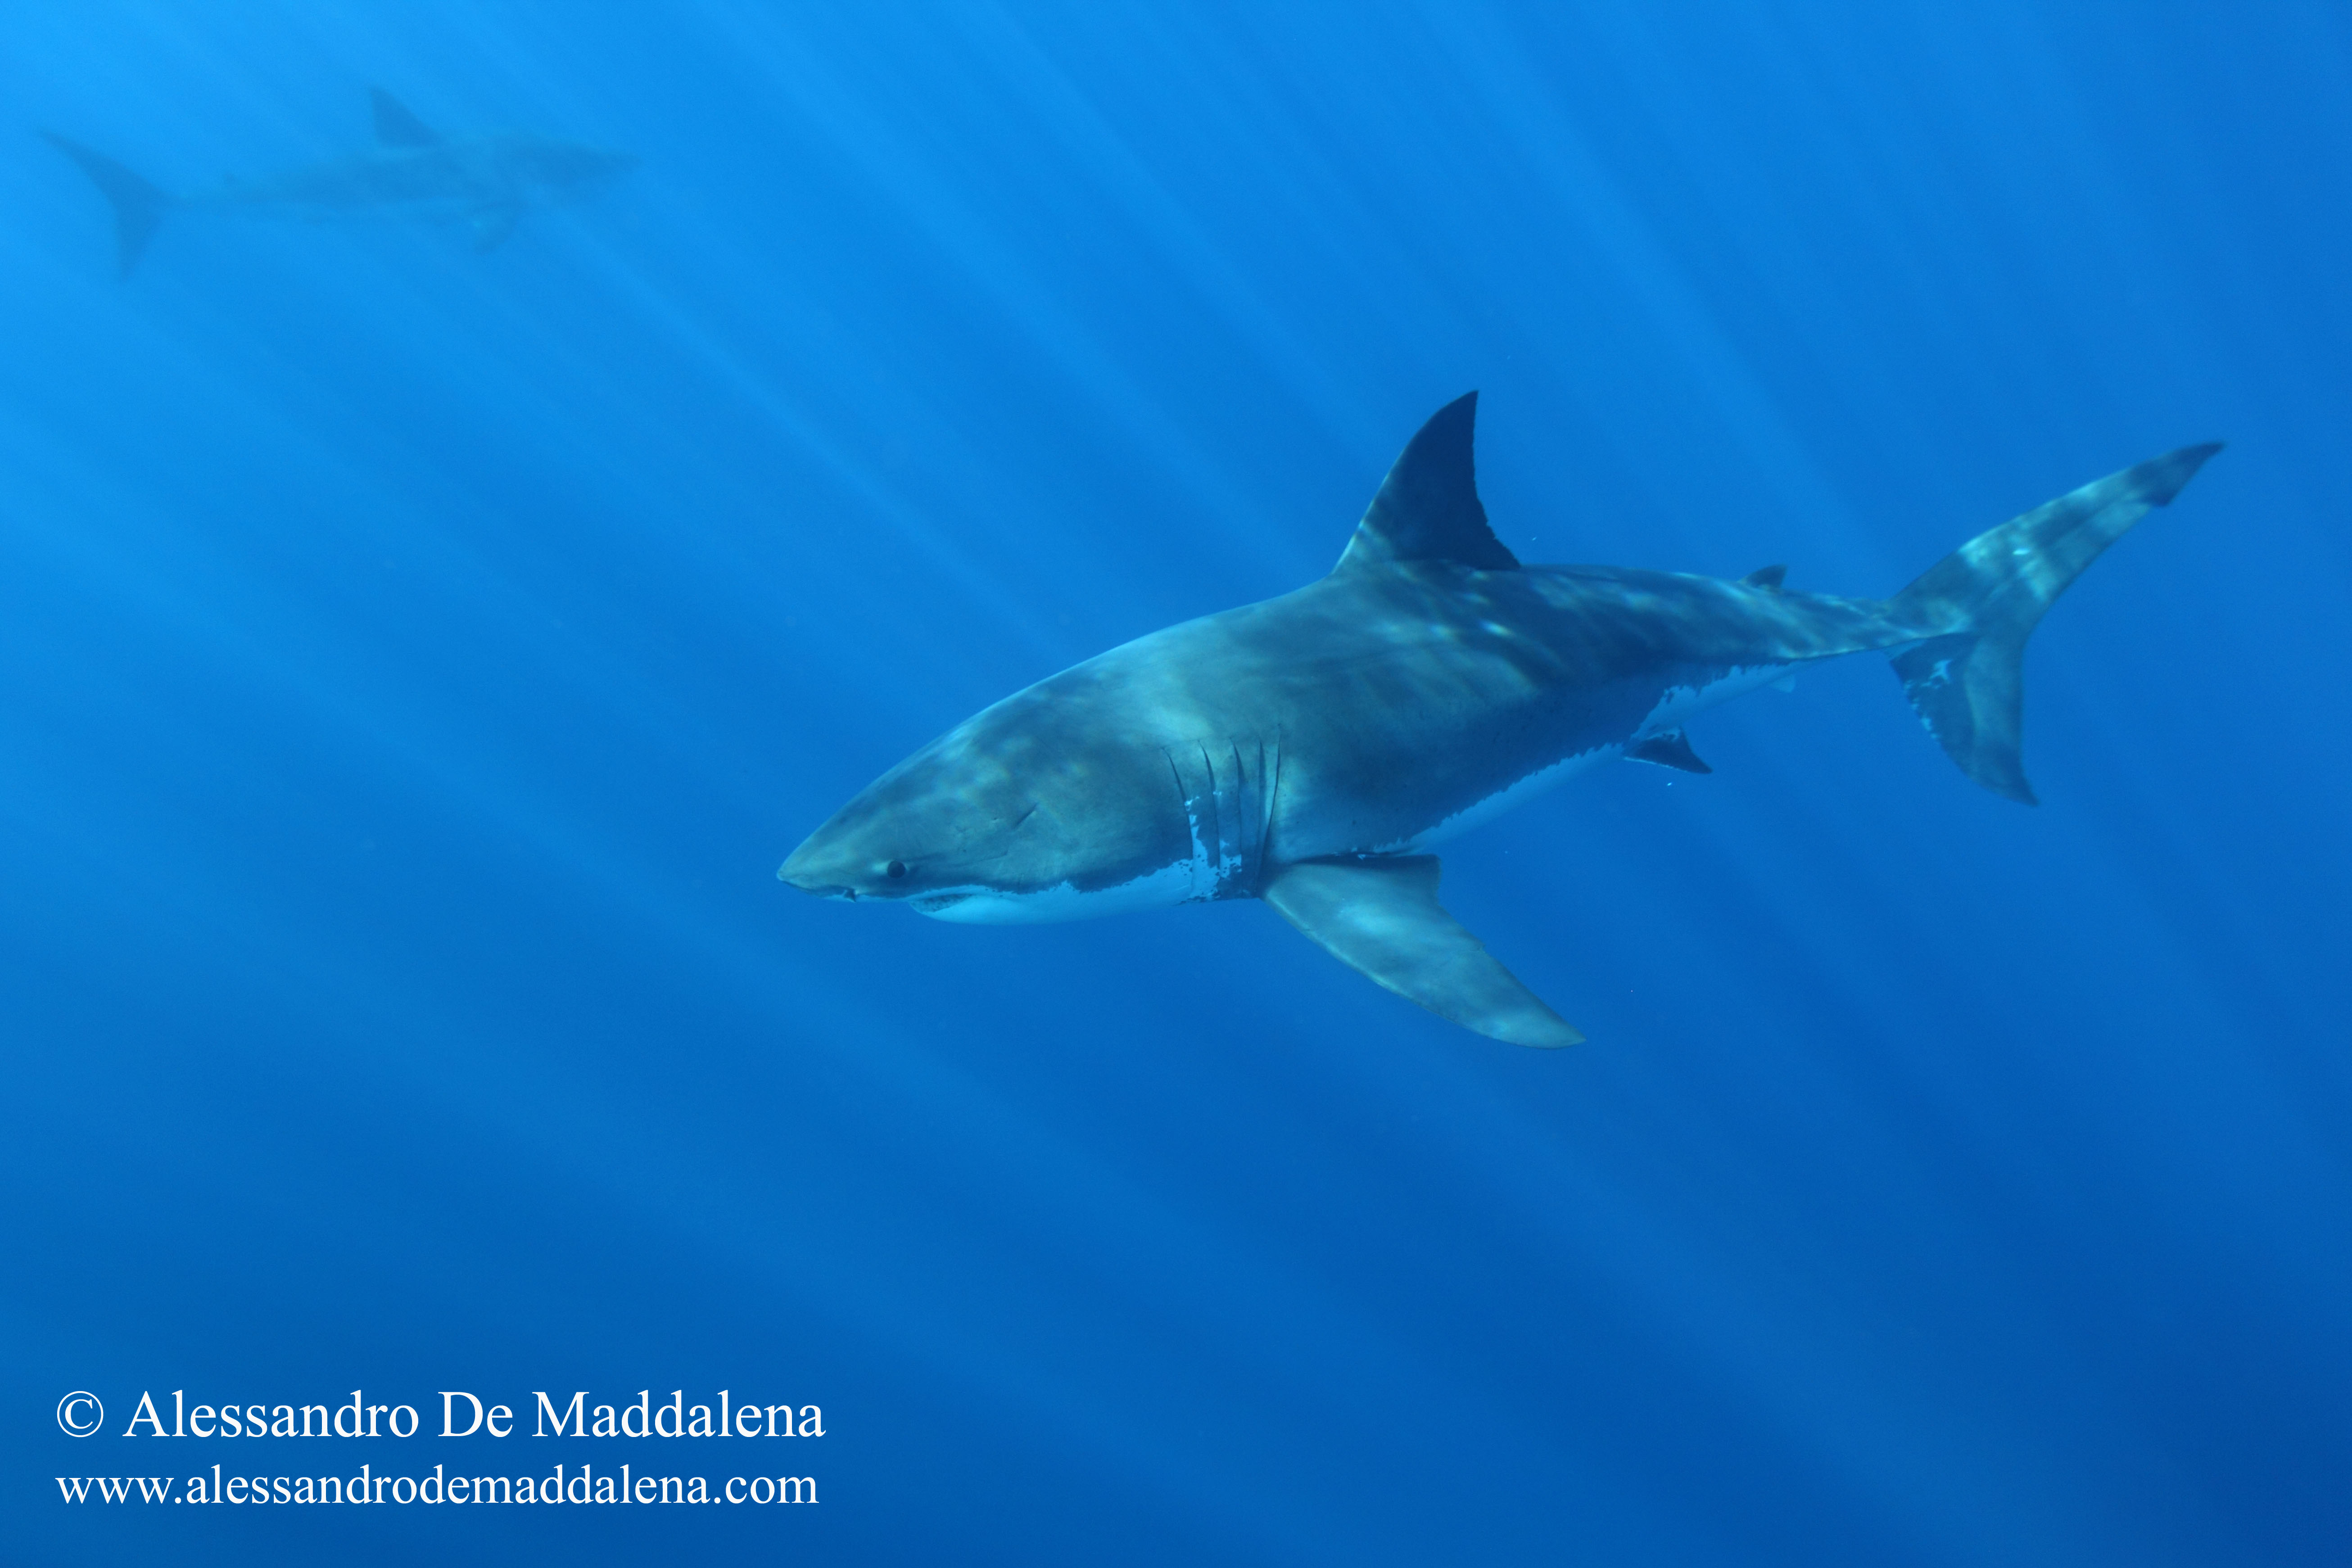 Program of the Great White Shark Expedition in Guadalupe